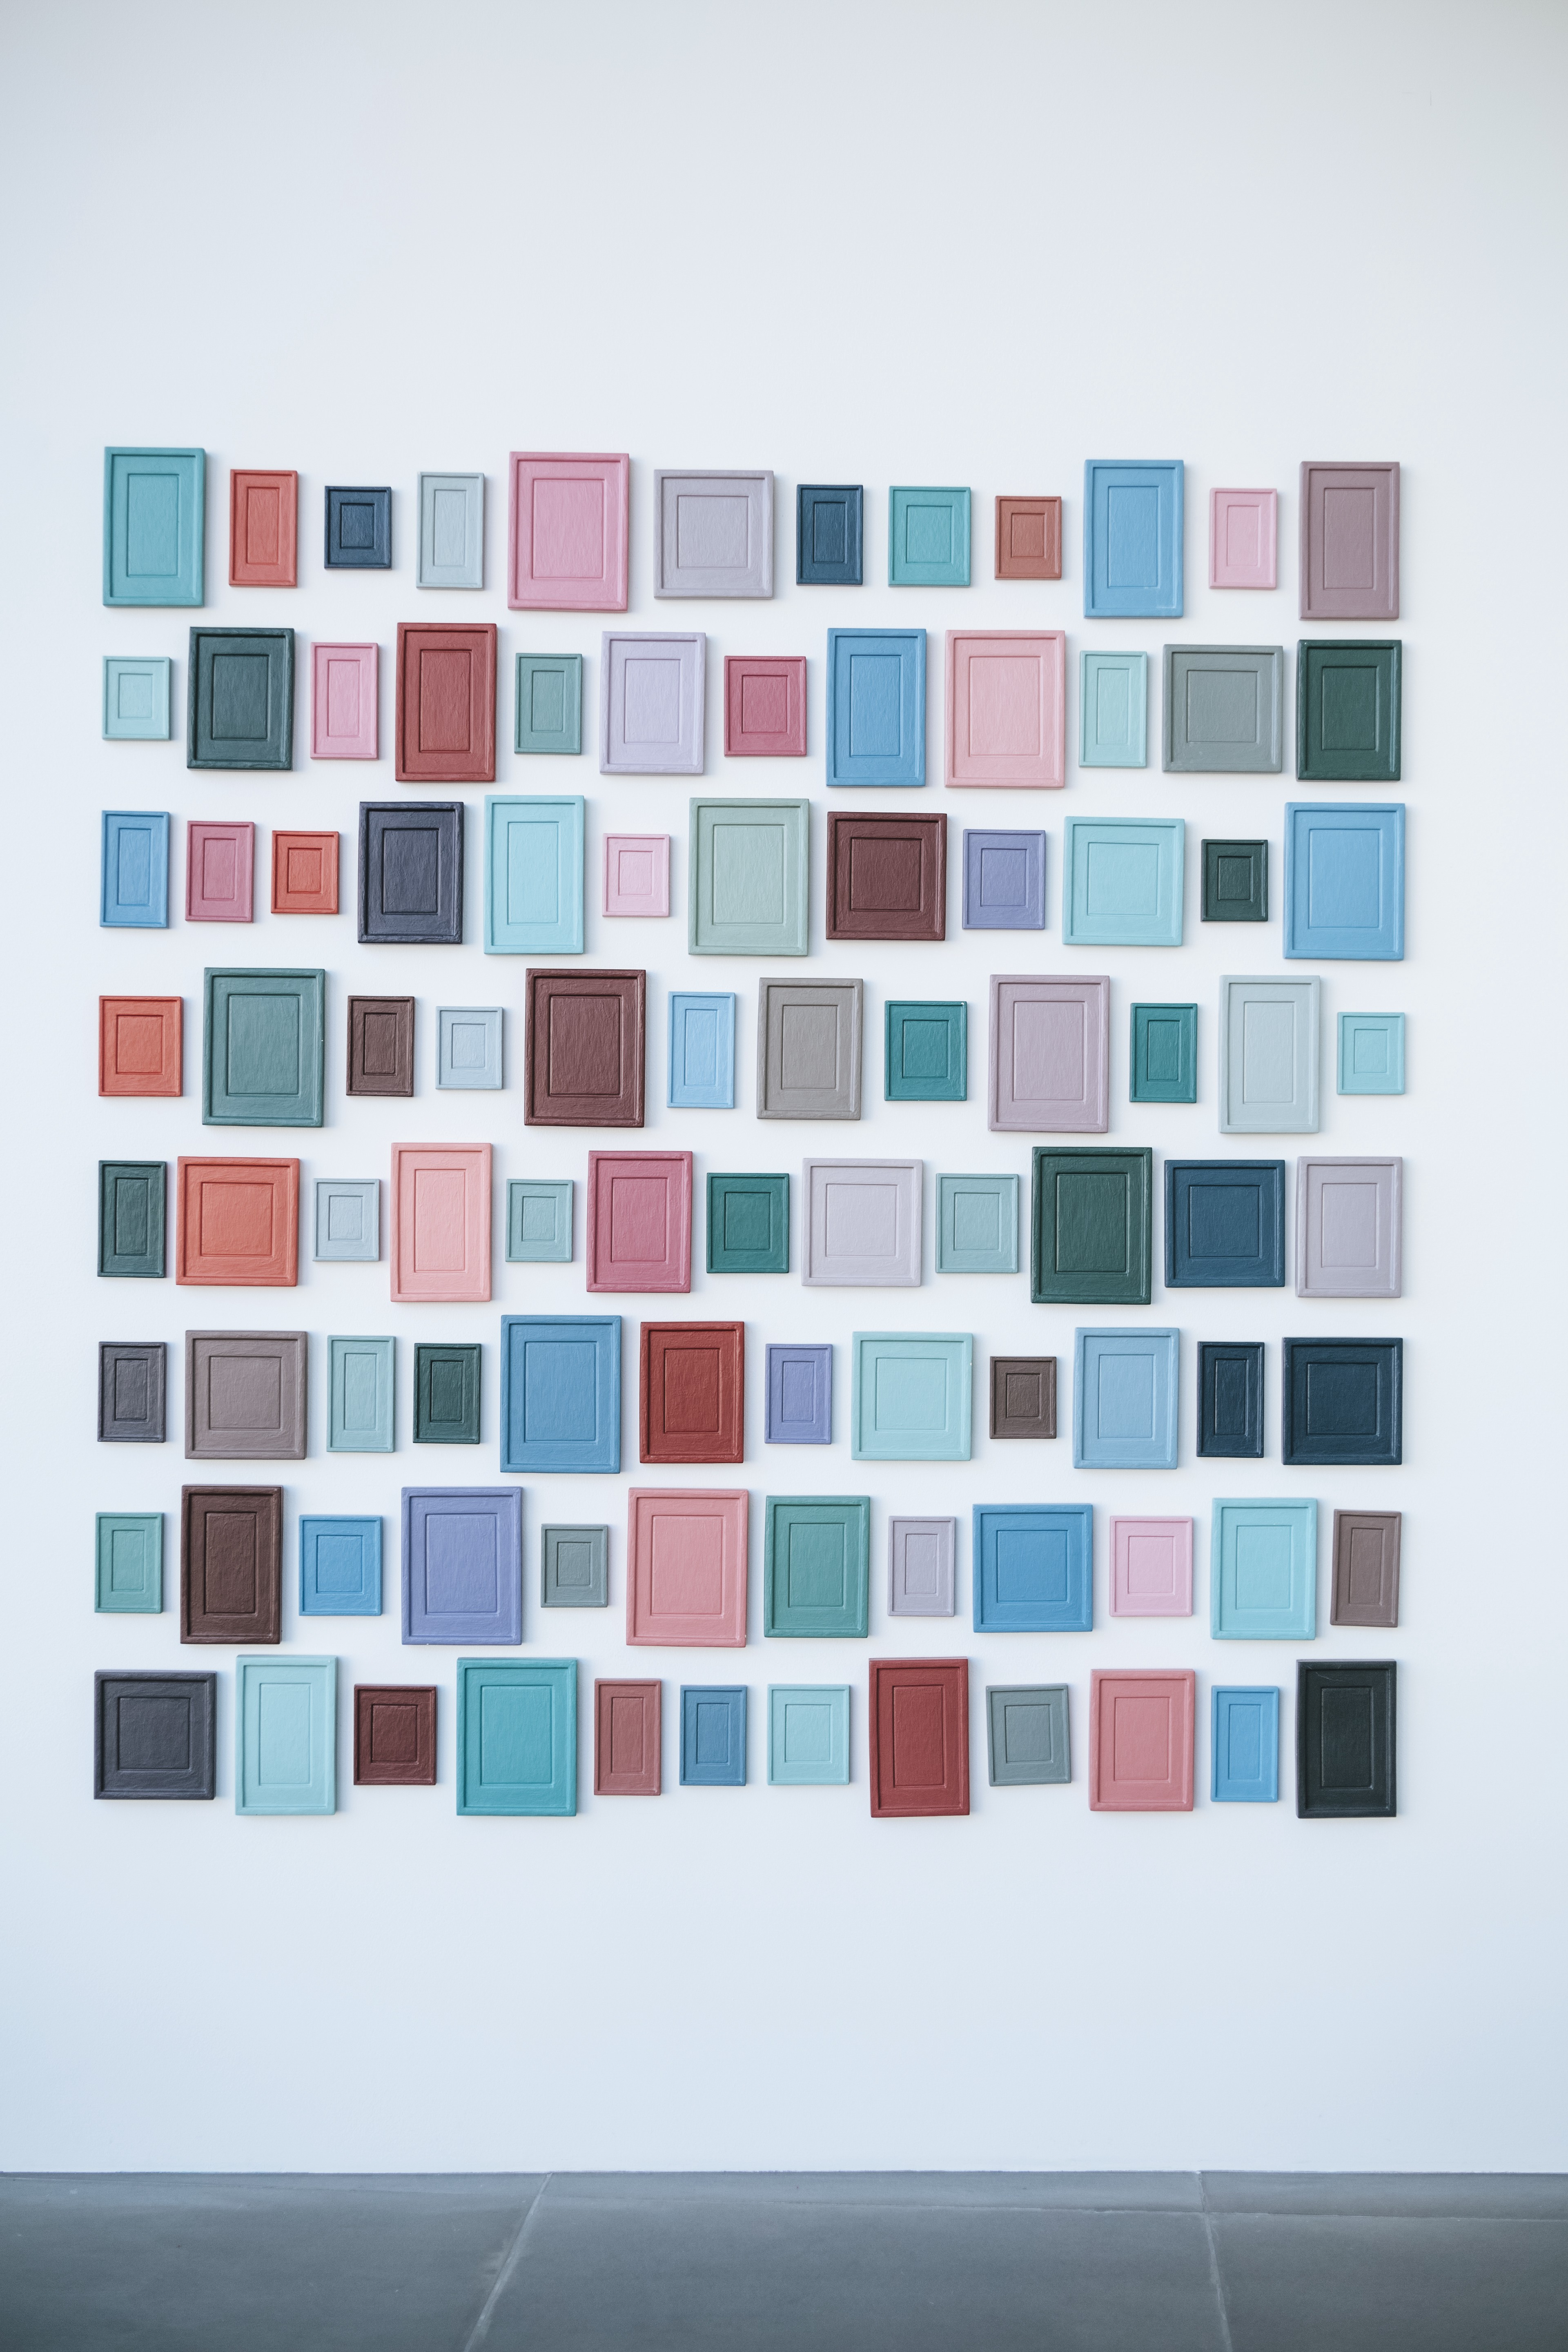 a wall of blank picture frames painted in different colors and organized in rows and columns